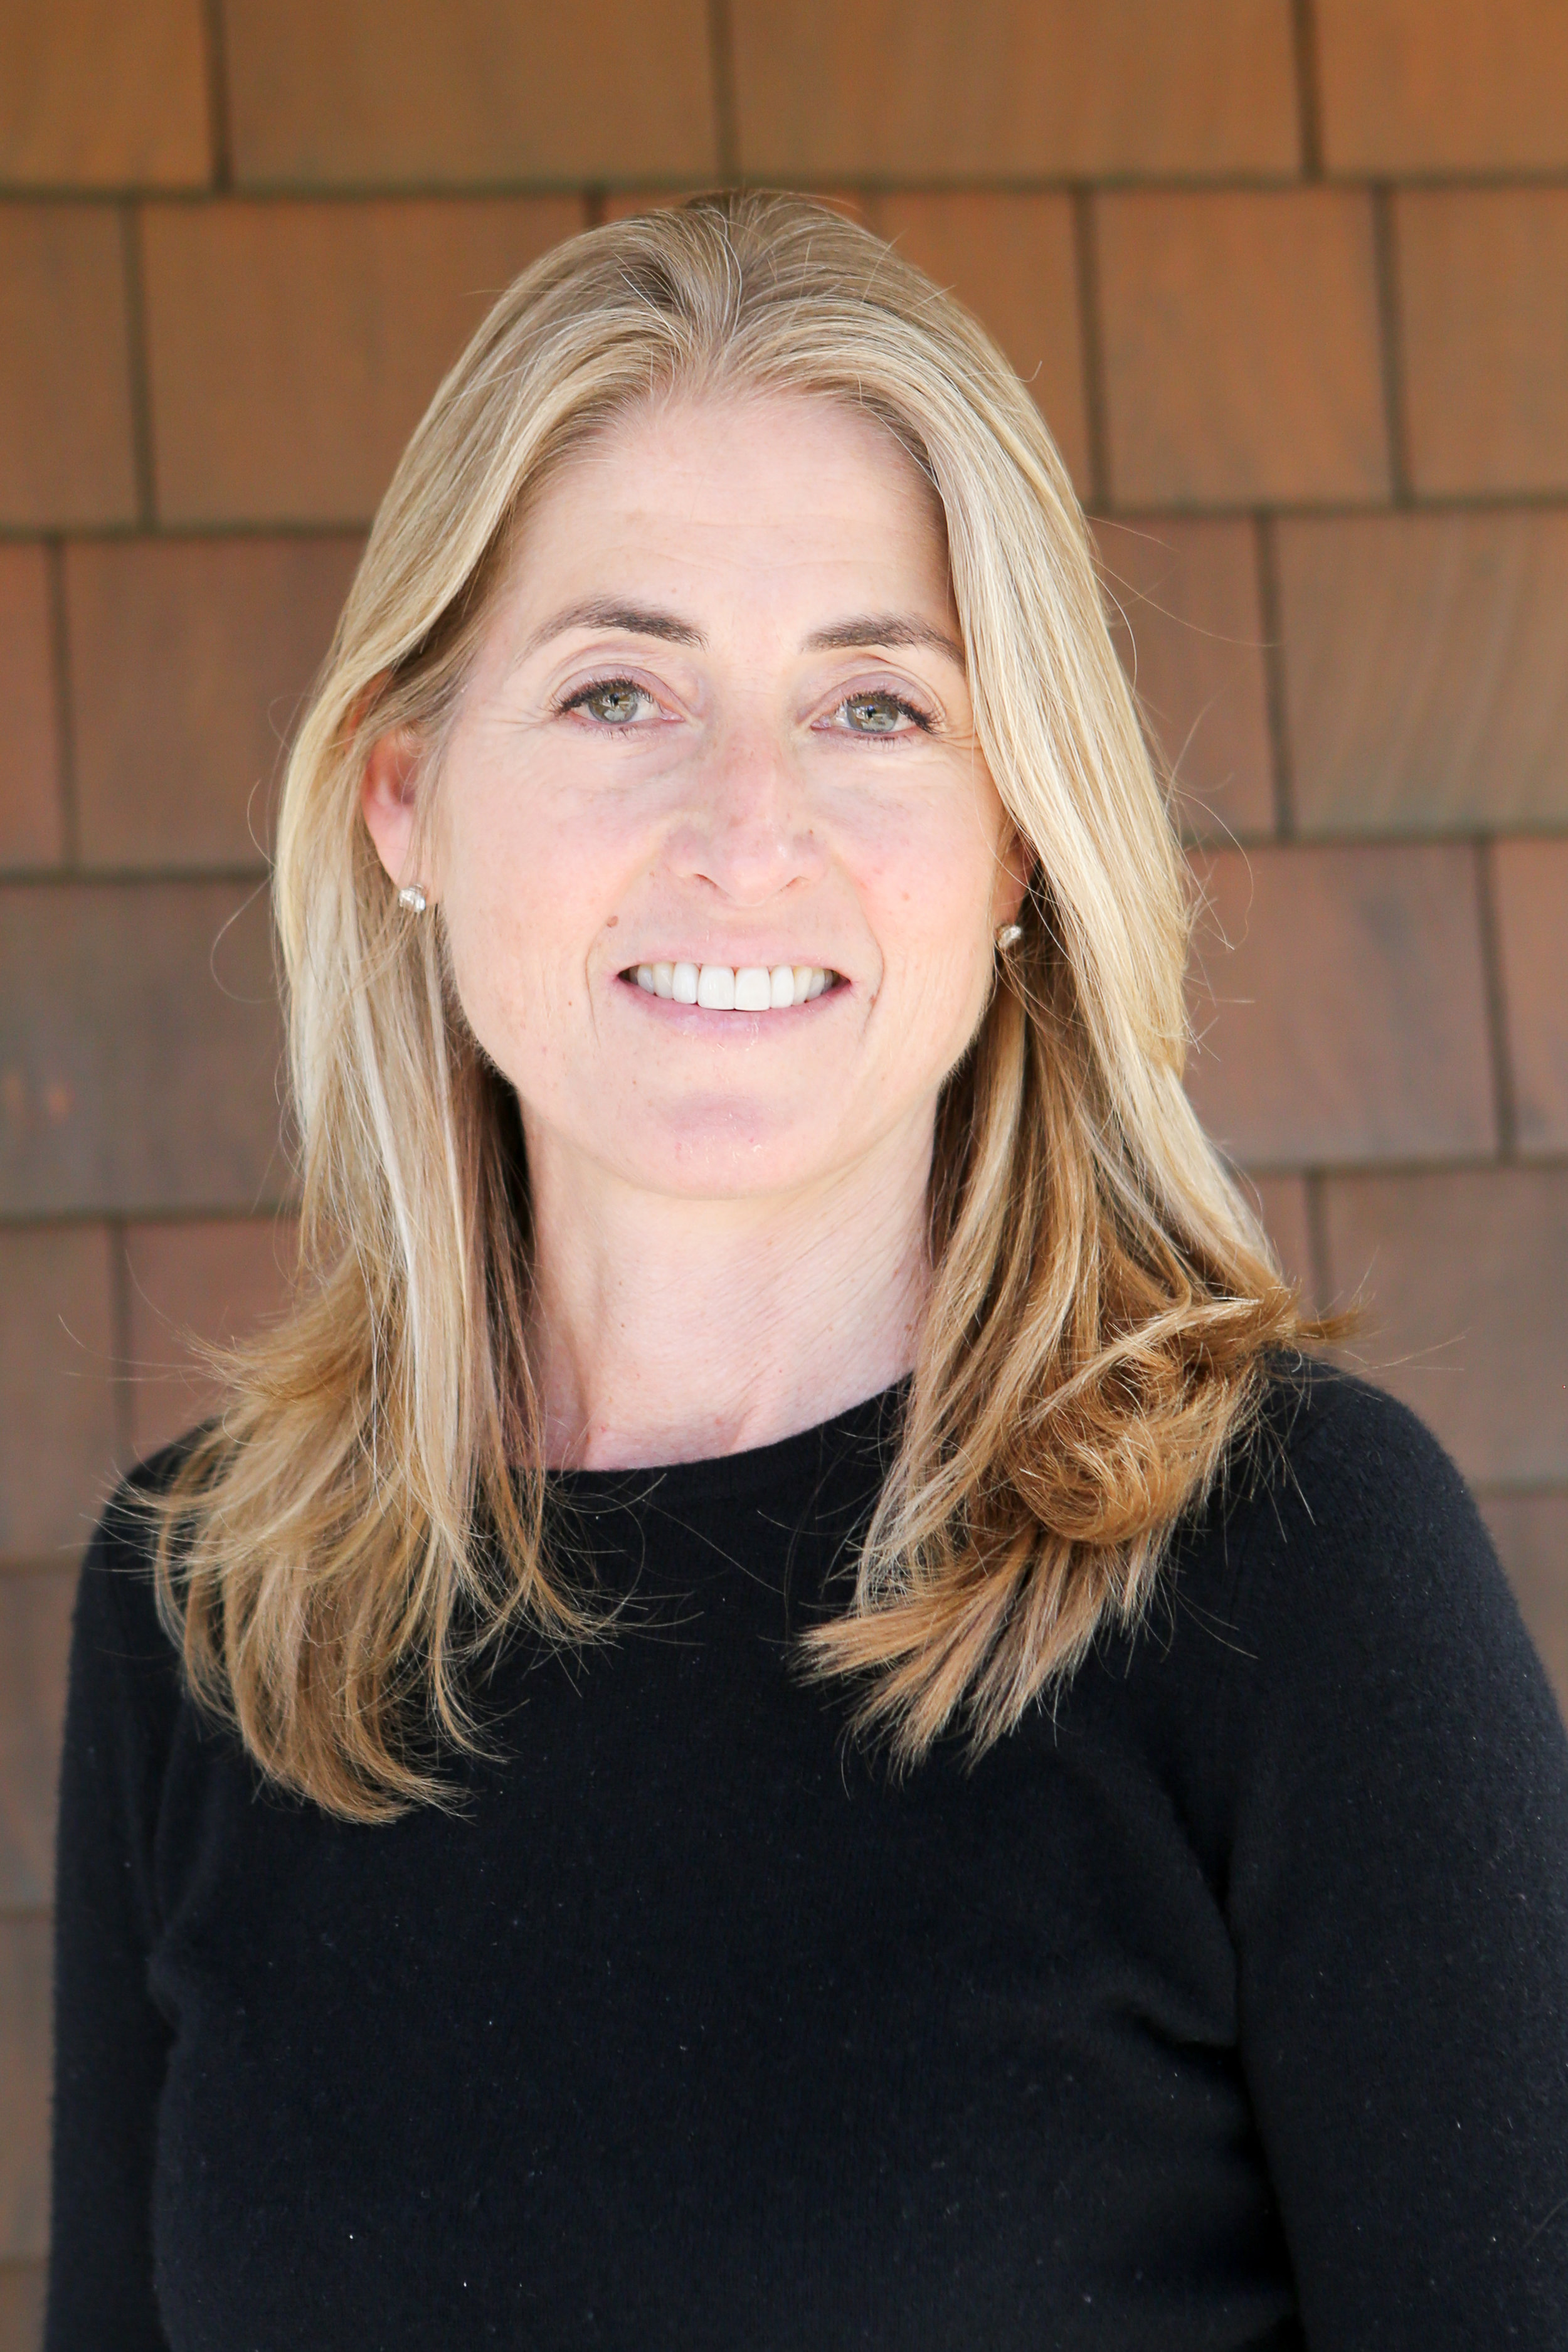 Mimi Van Son, Director of Development, 4 years at MTS